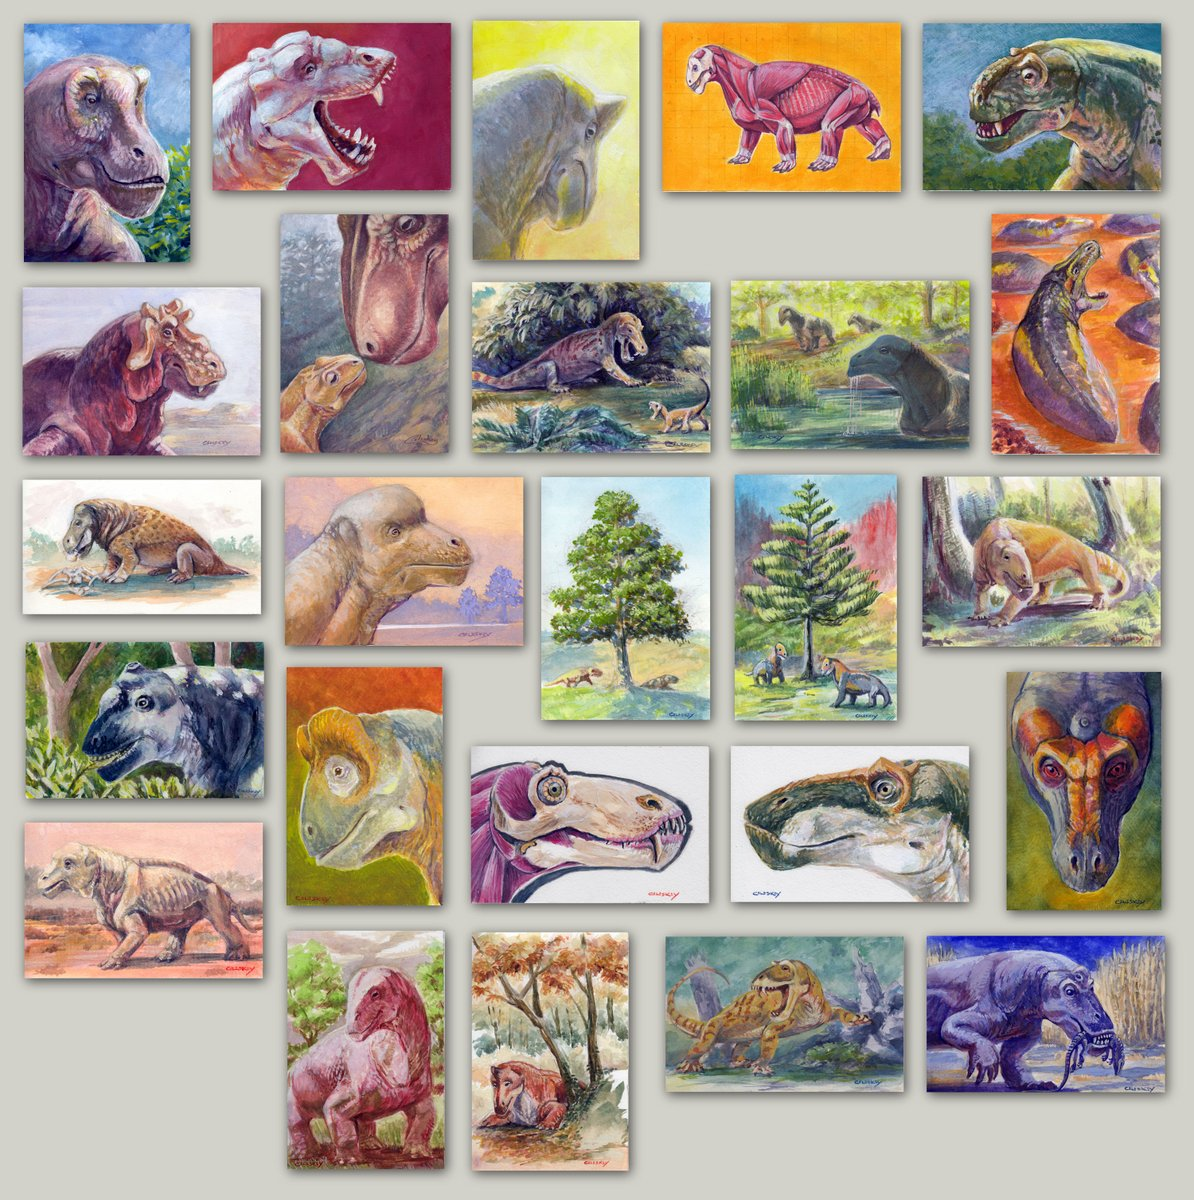 A #FossilFriday compilation of the first 25 mini-paintings for Dinocephalian #DrawDinovember/#Dinocephcember. It's been super rewarding to research these and see the series come together, and I appreciate everyone who has commented/liked/retweeted! The final 5 are on their way…